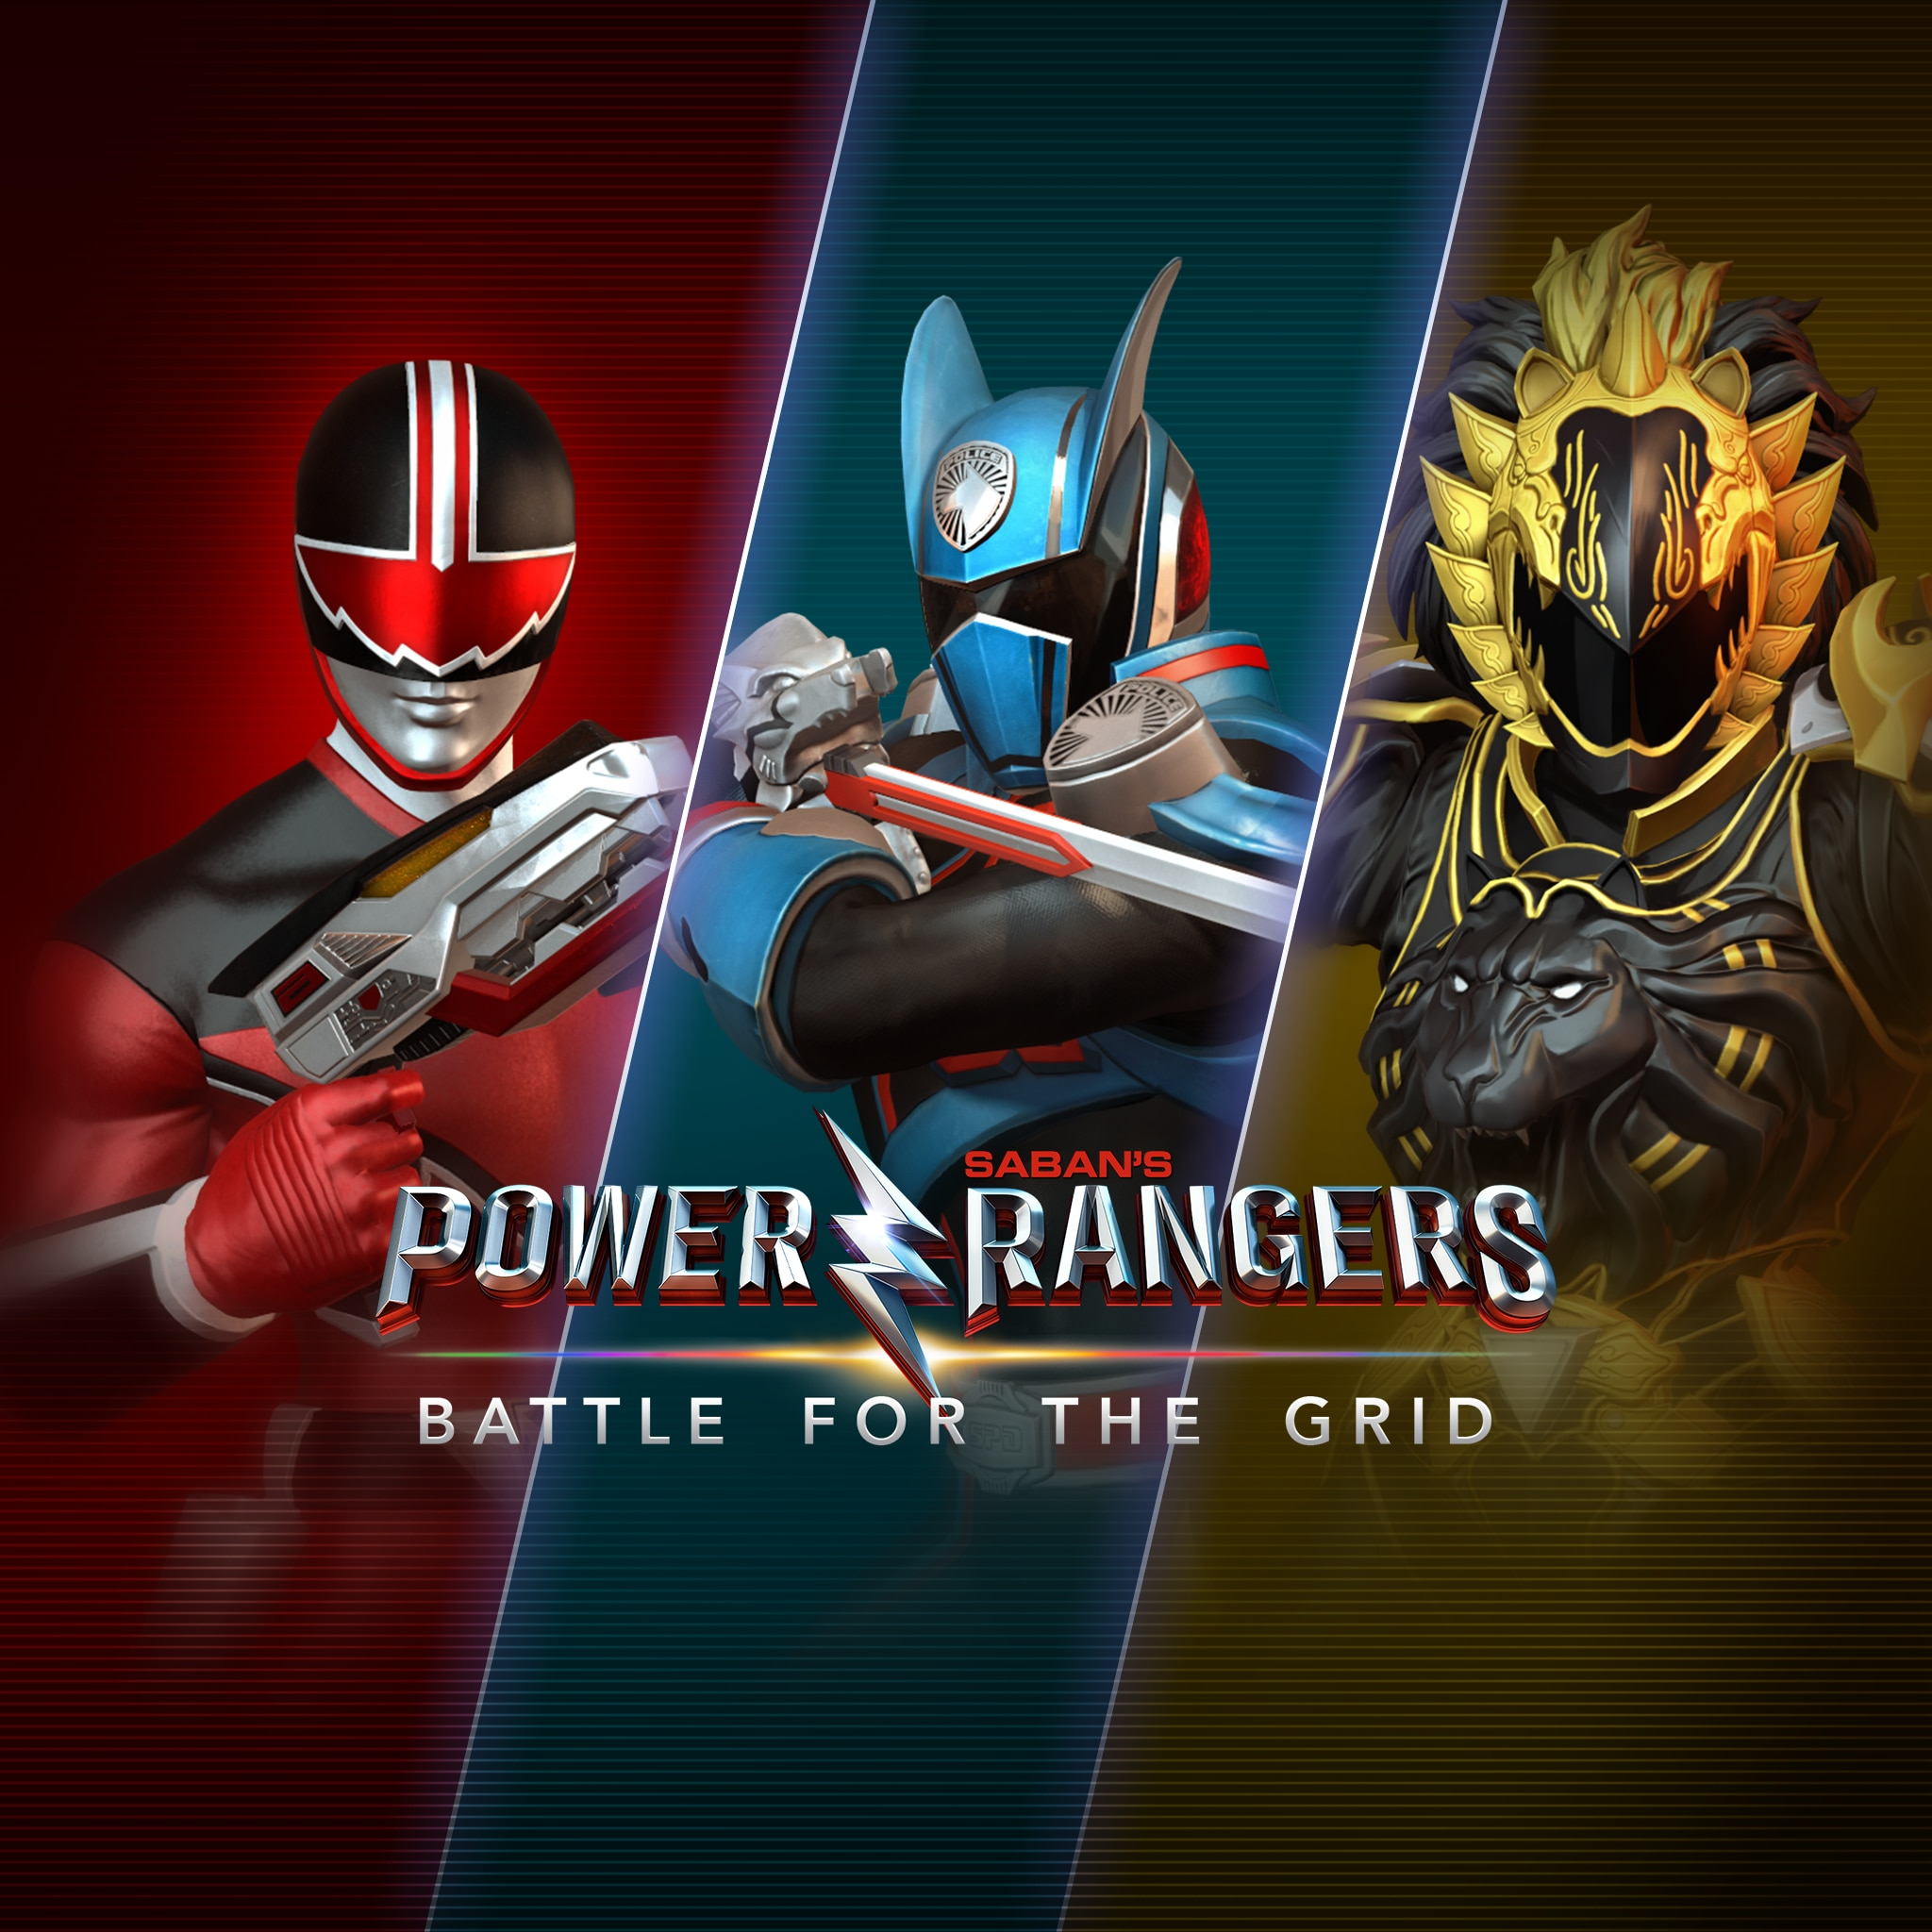 Power Rangers: Battle For The Grid - Passe da 2ª temporada